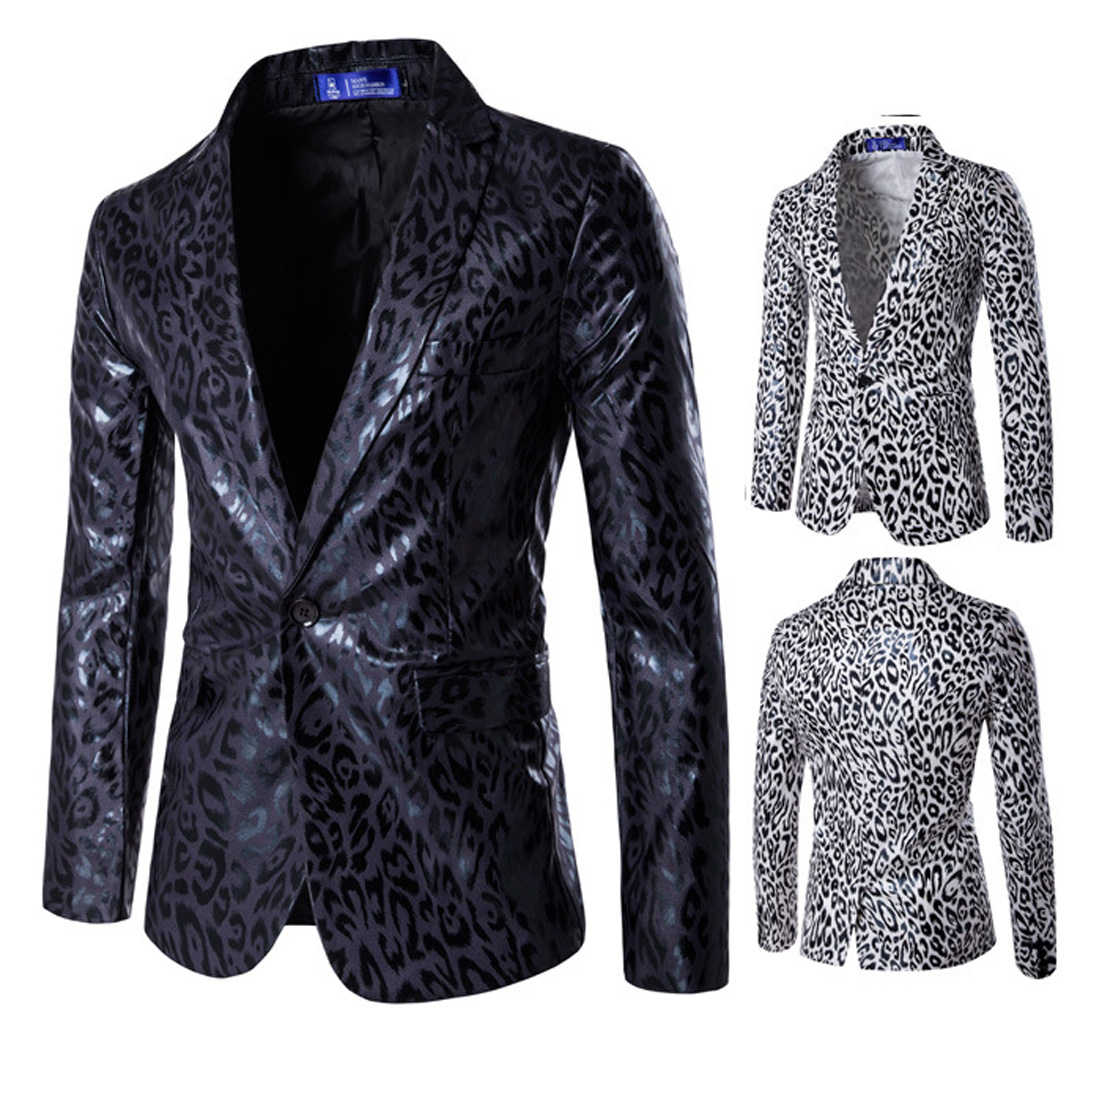 Men's Blazer Slim Fit Style Sex Party Suit Jackets Leopard Blazers Male Fashion Leopard Suit Coats M-3XL Costumes Blazers